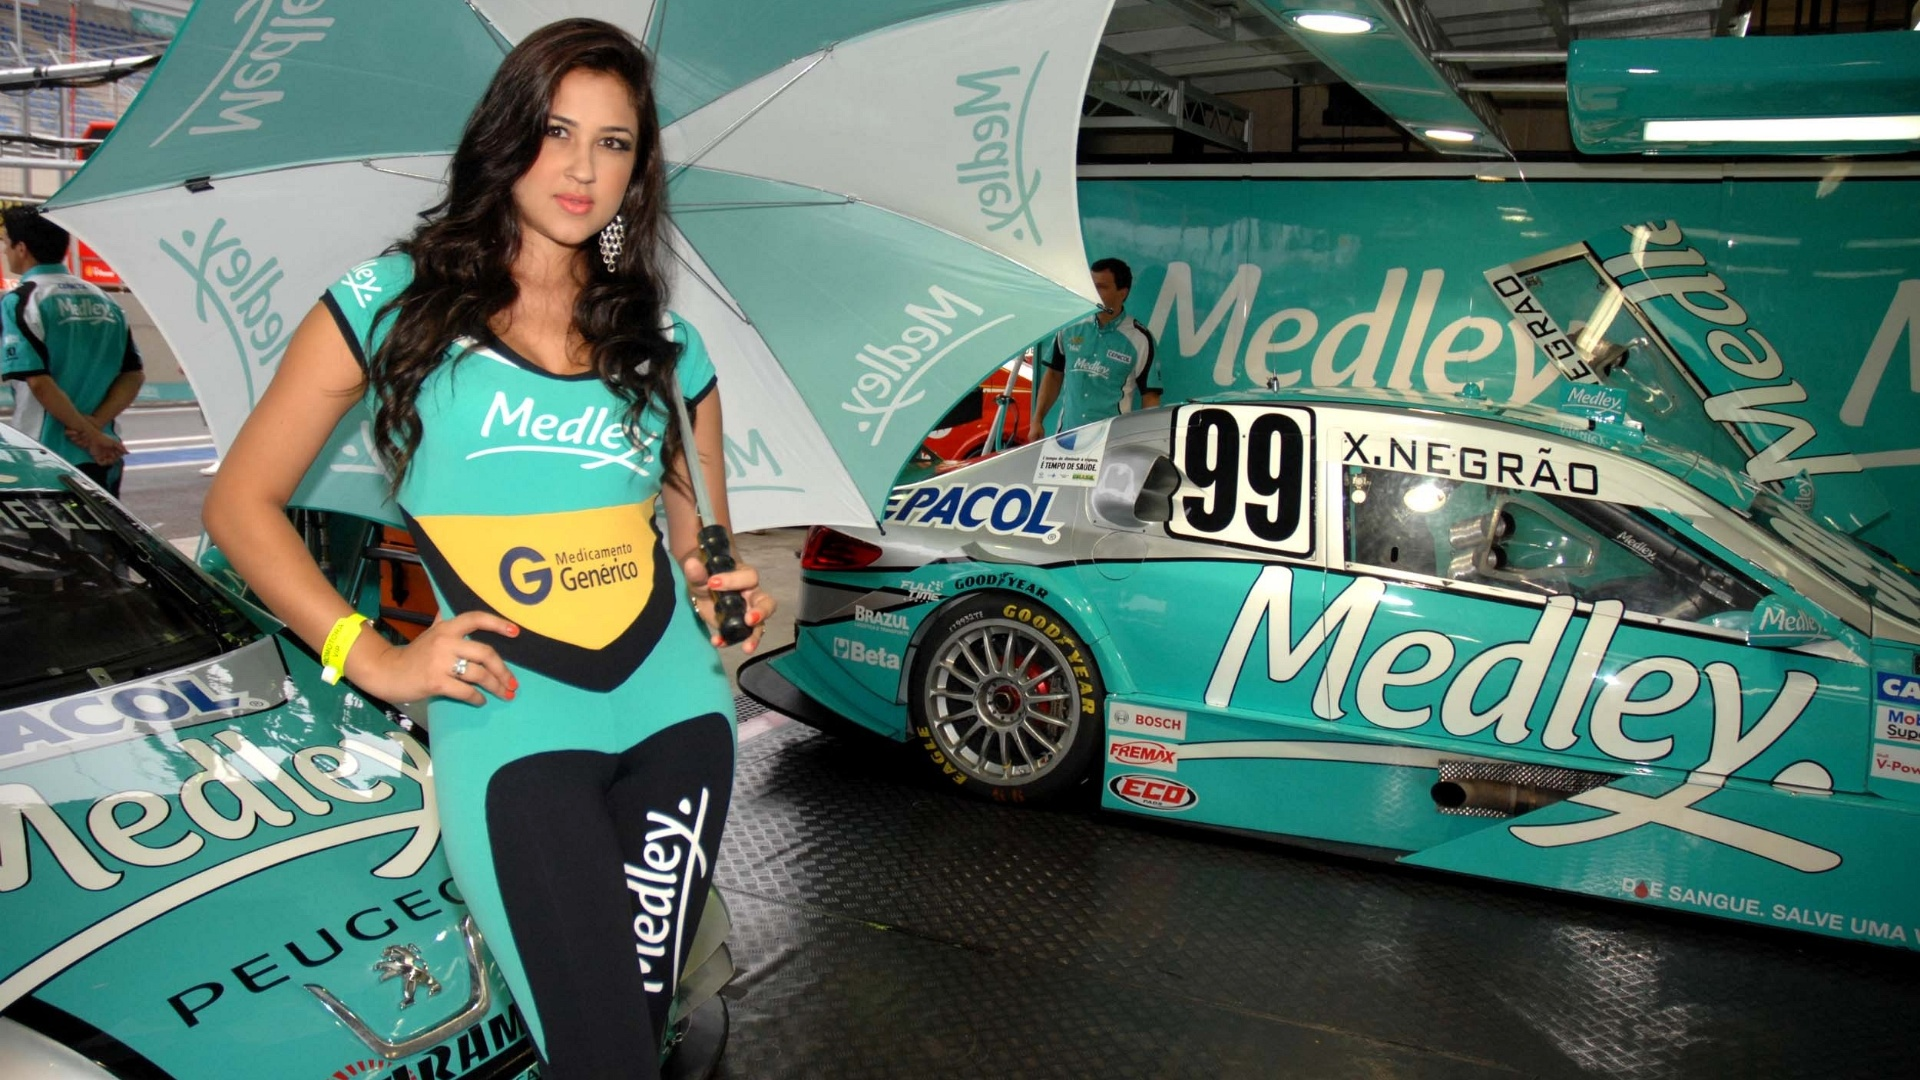 Grid girl posa com guarda chuva na mão no box da Medley